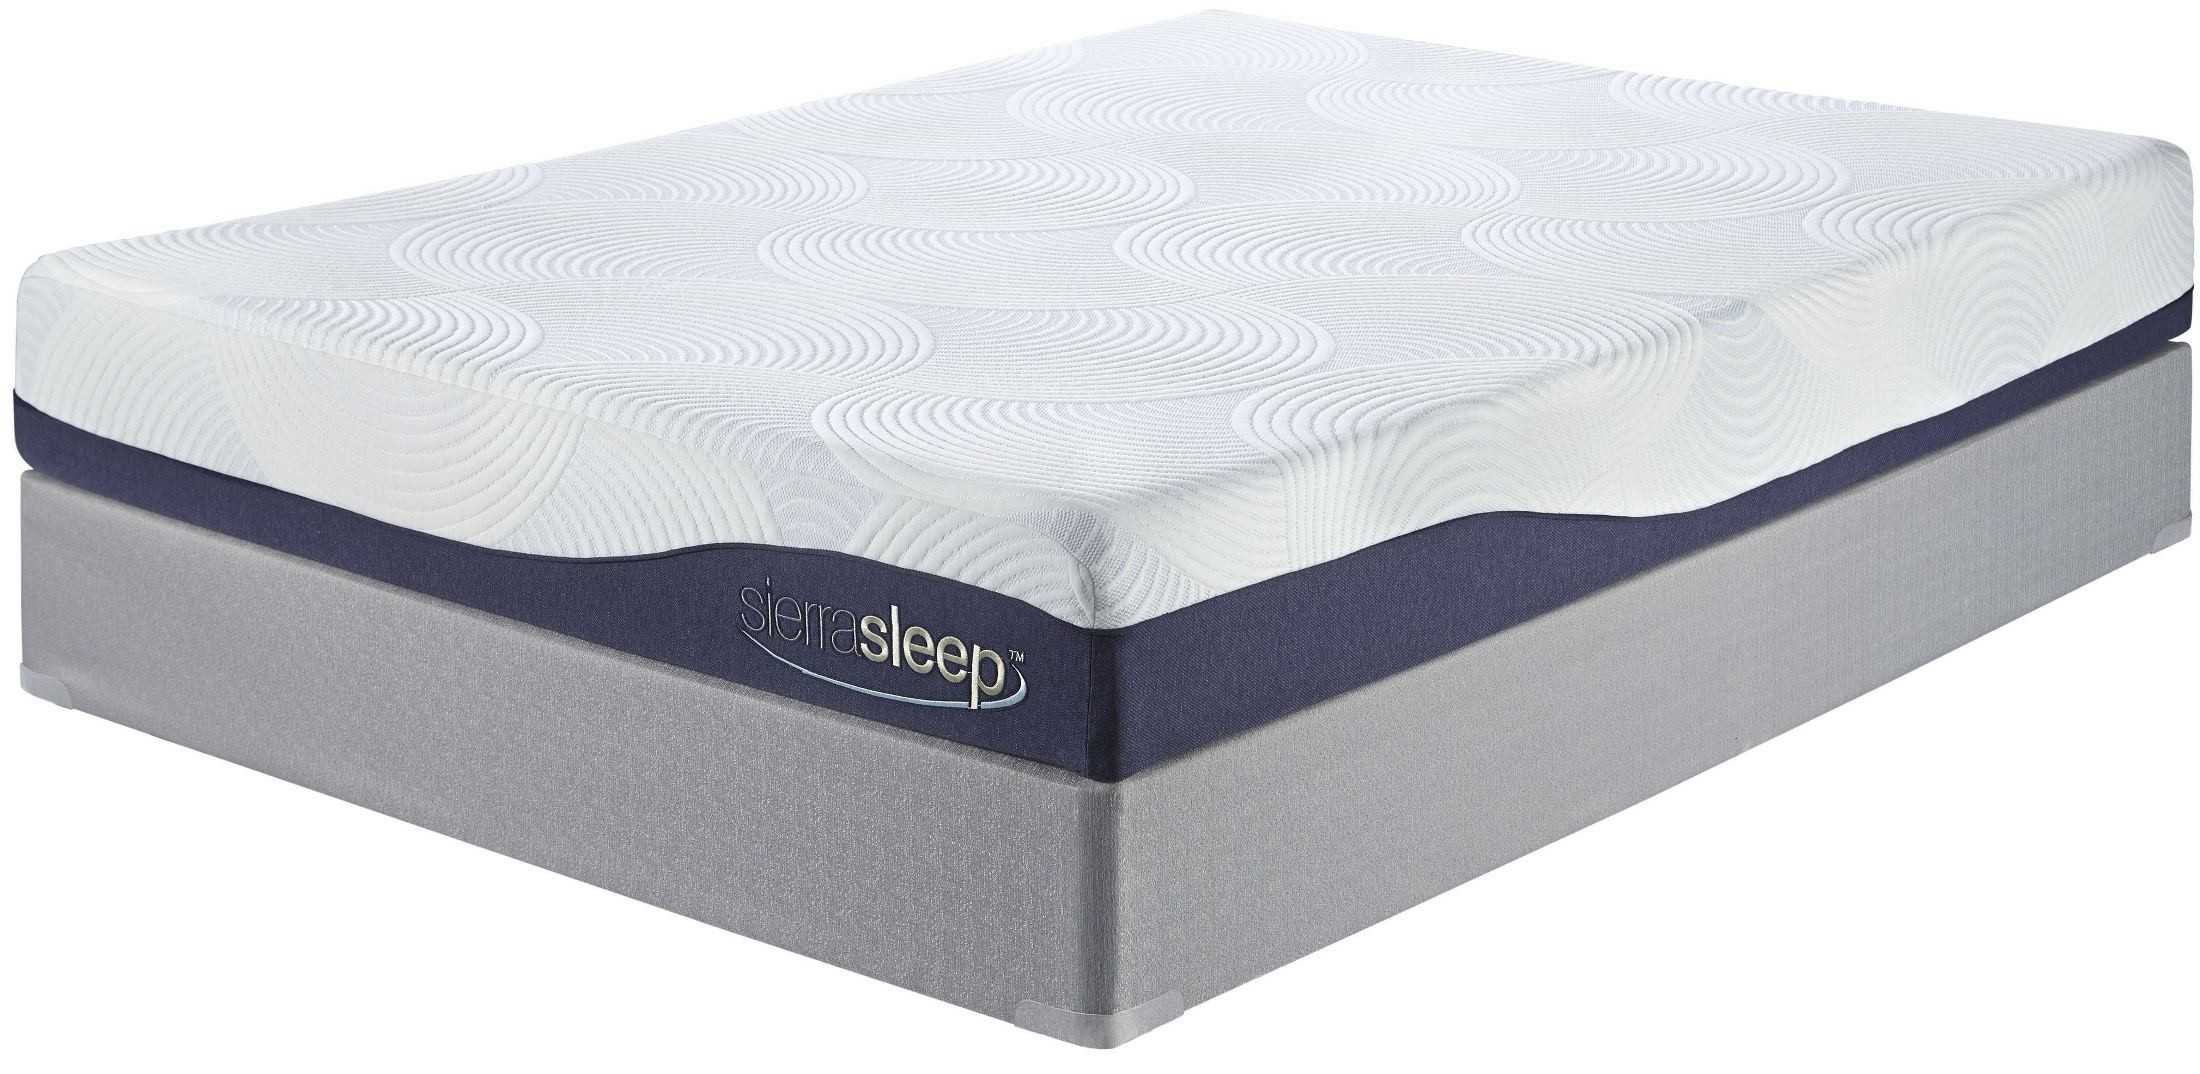 9 inch gel memory foam white cal king mattress from ashley m97251 coleman furniture Memory foam king mattress